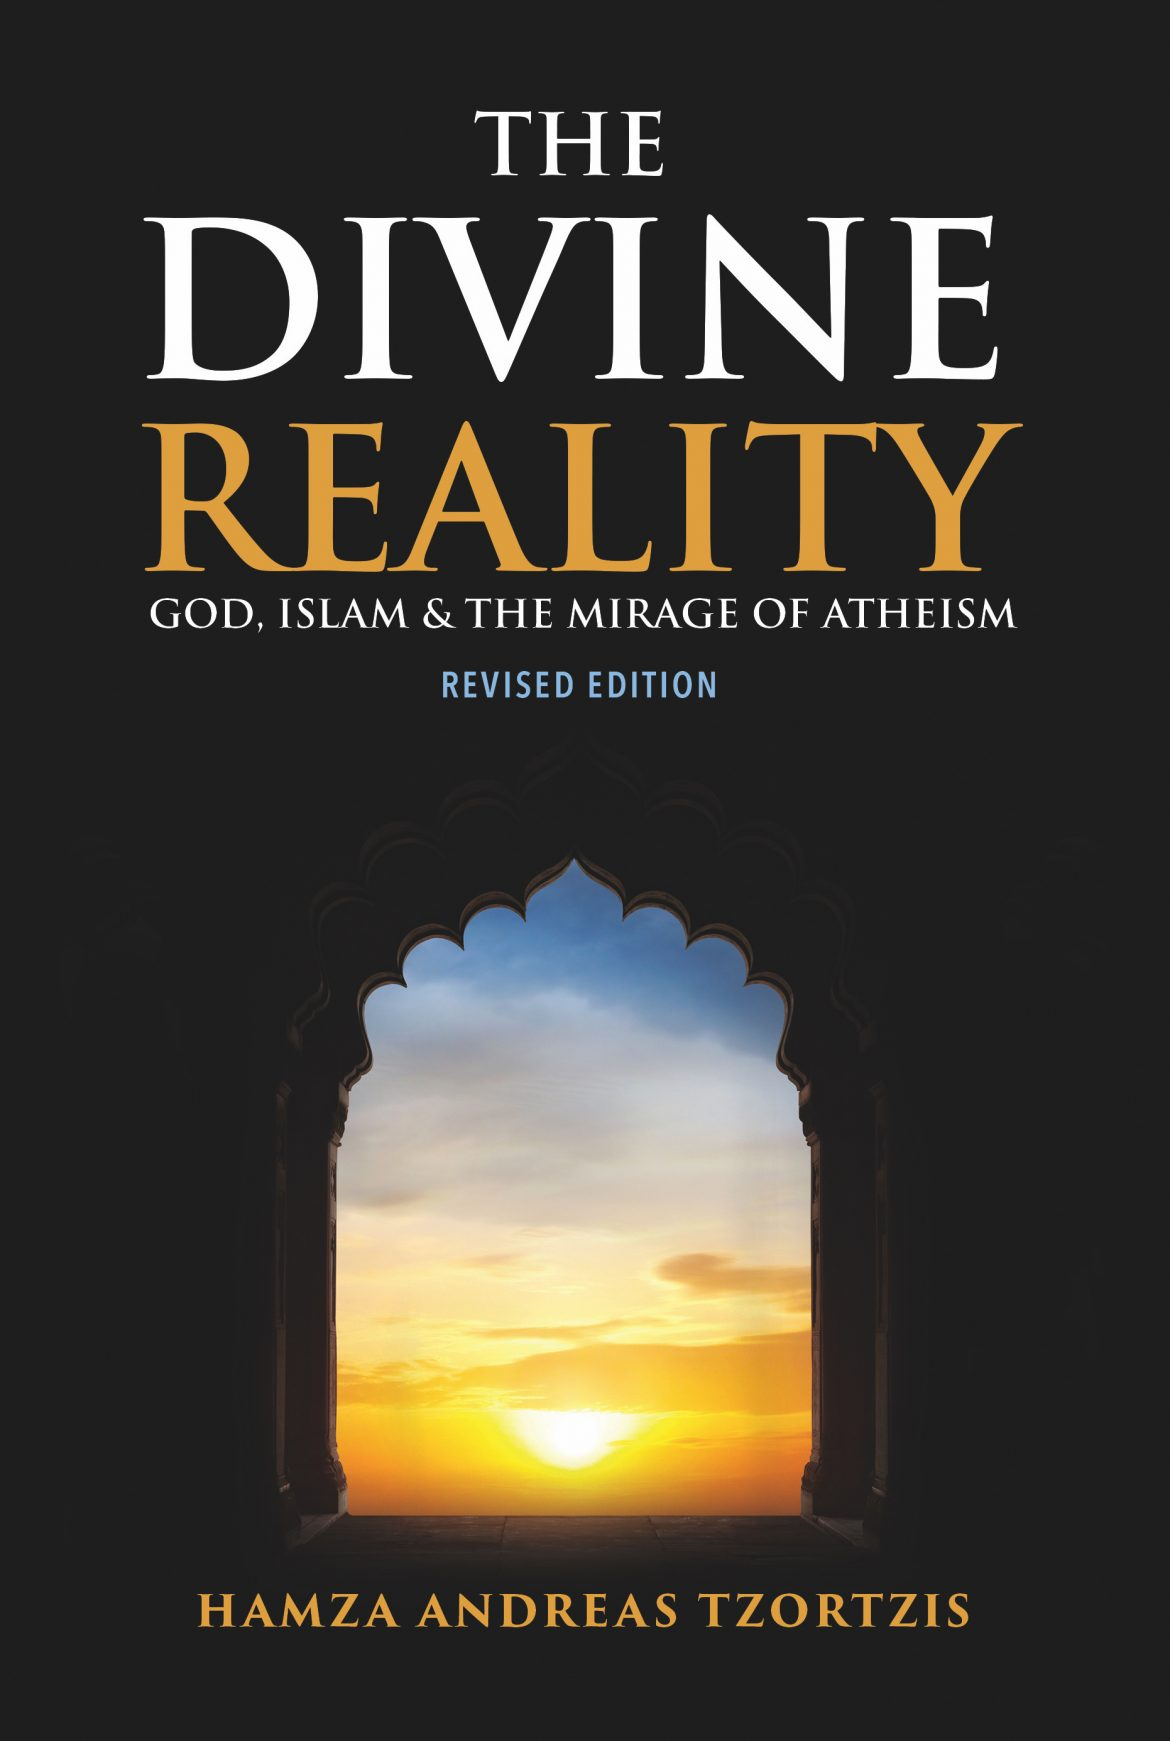 Available Now: The Revised Edition of The Divine Reality